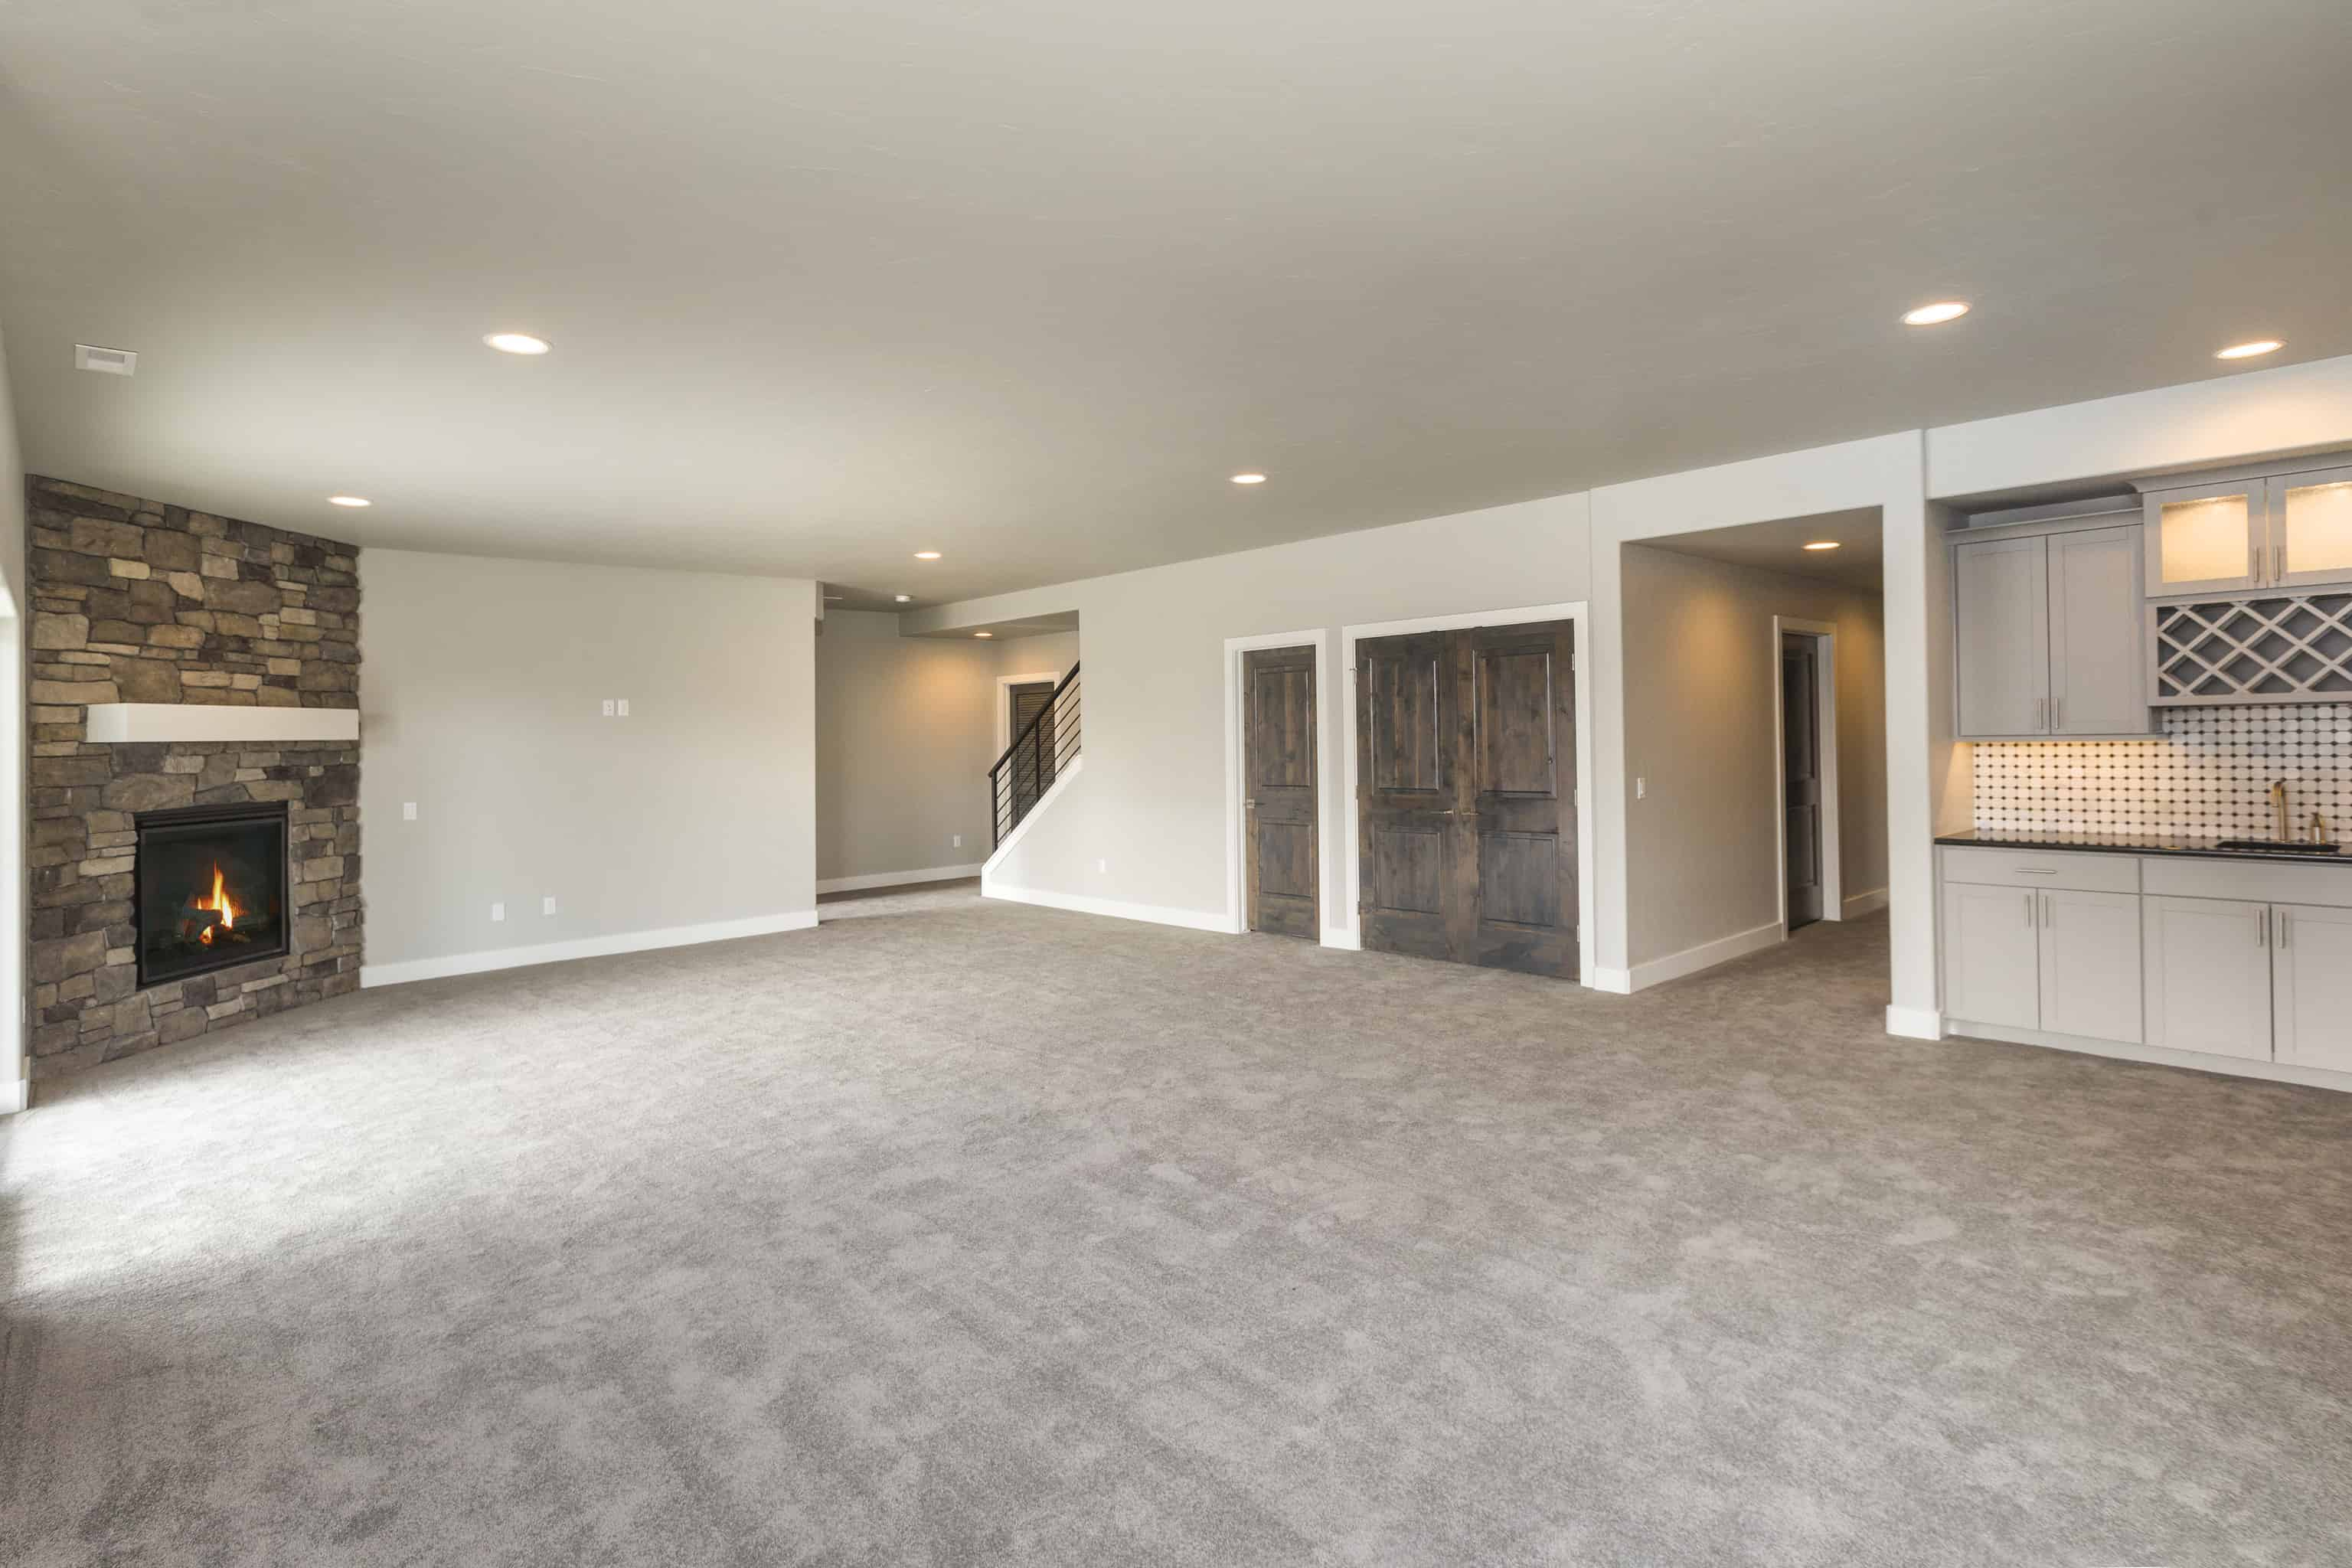 A remodeled basement with a freshly vacuumed floor